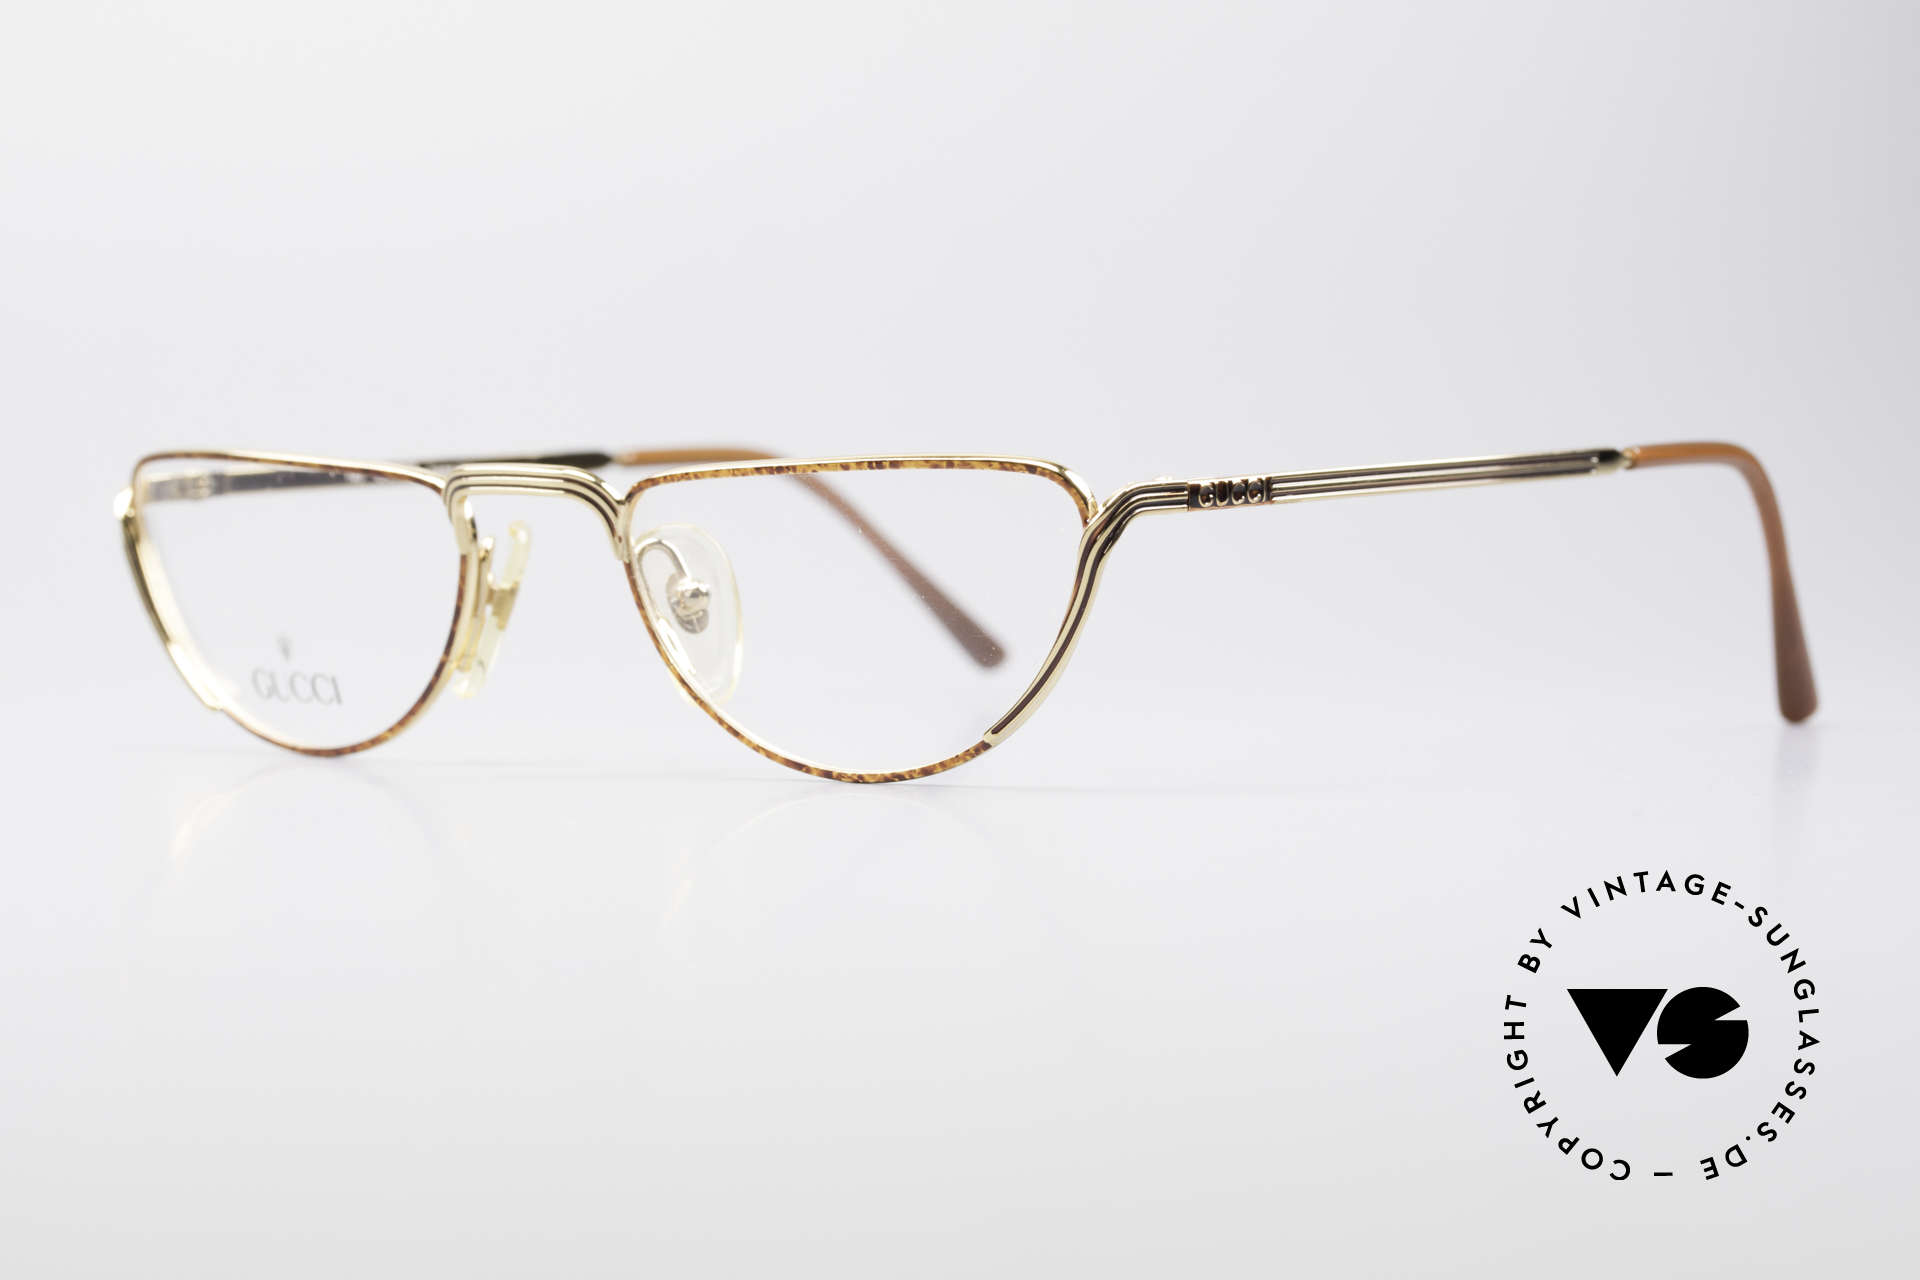 Gucci 2203 Vintage Reading Glasses 80's, classic Gucci design with noble frame coloring, Made for Men and Women